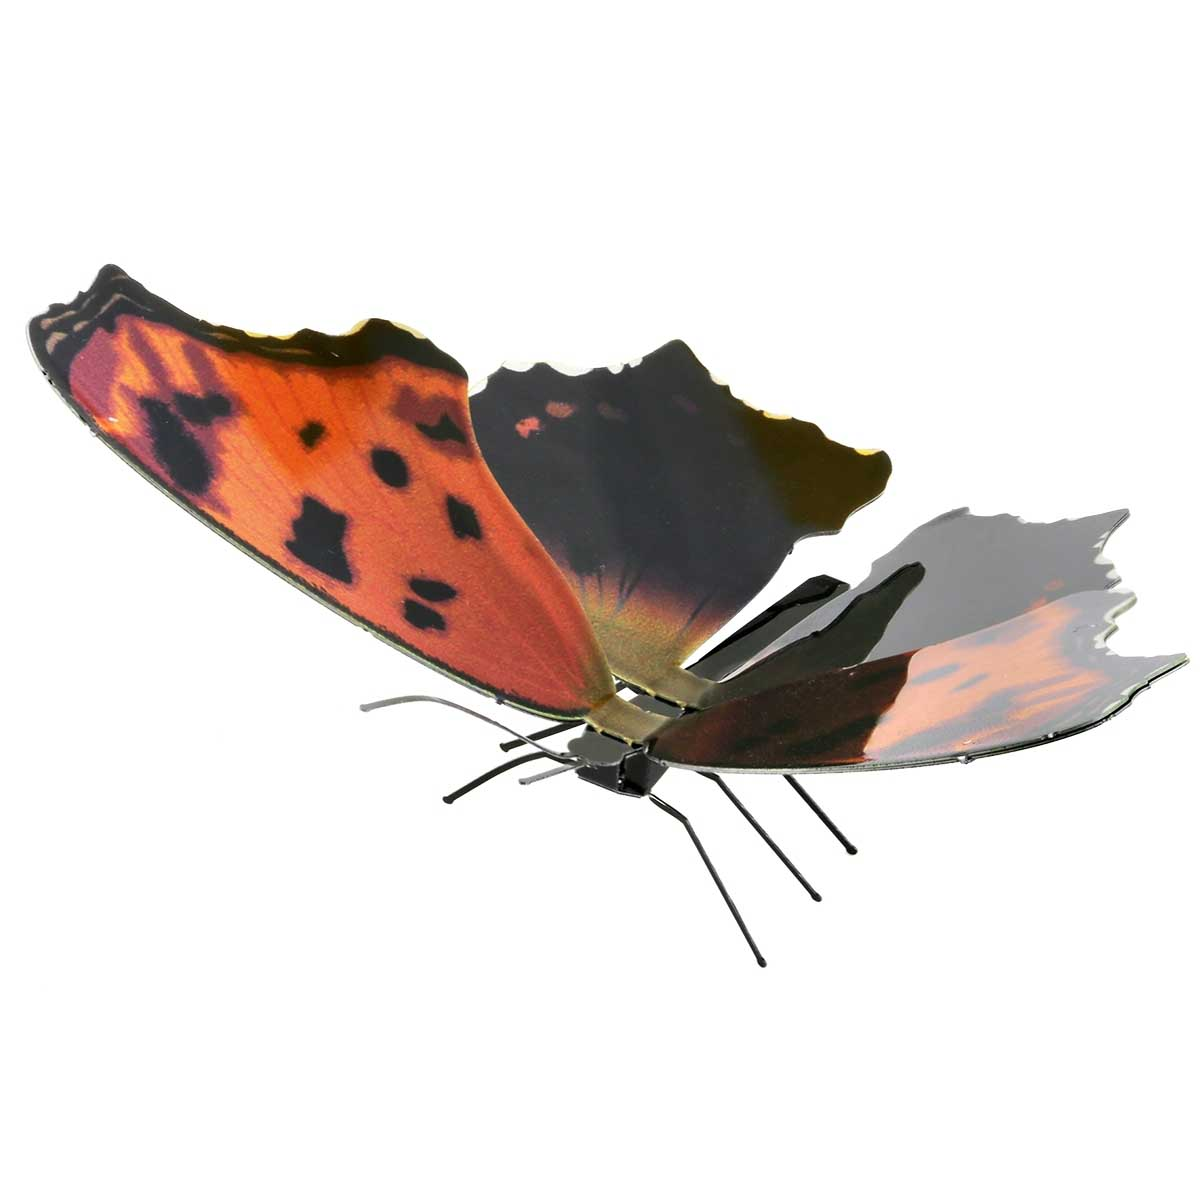 Eastern Comma Butterflies and Insects 3D Puzzle